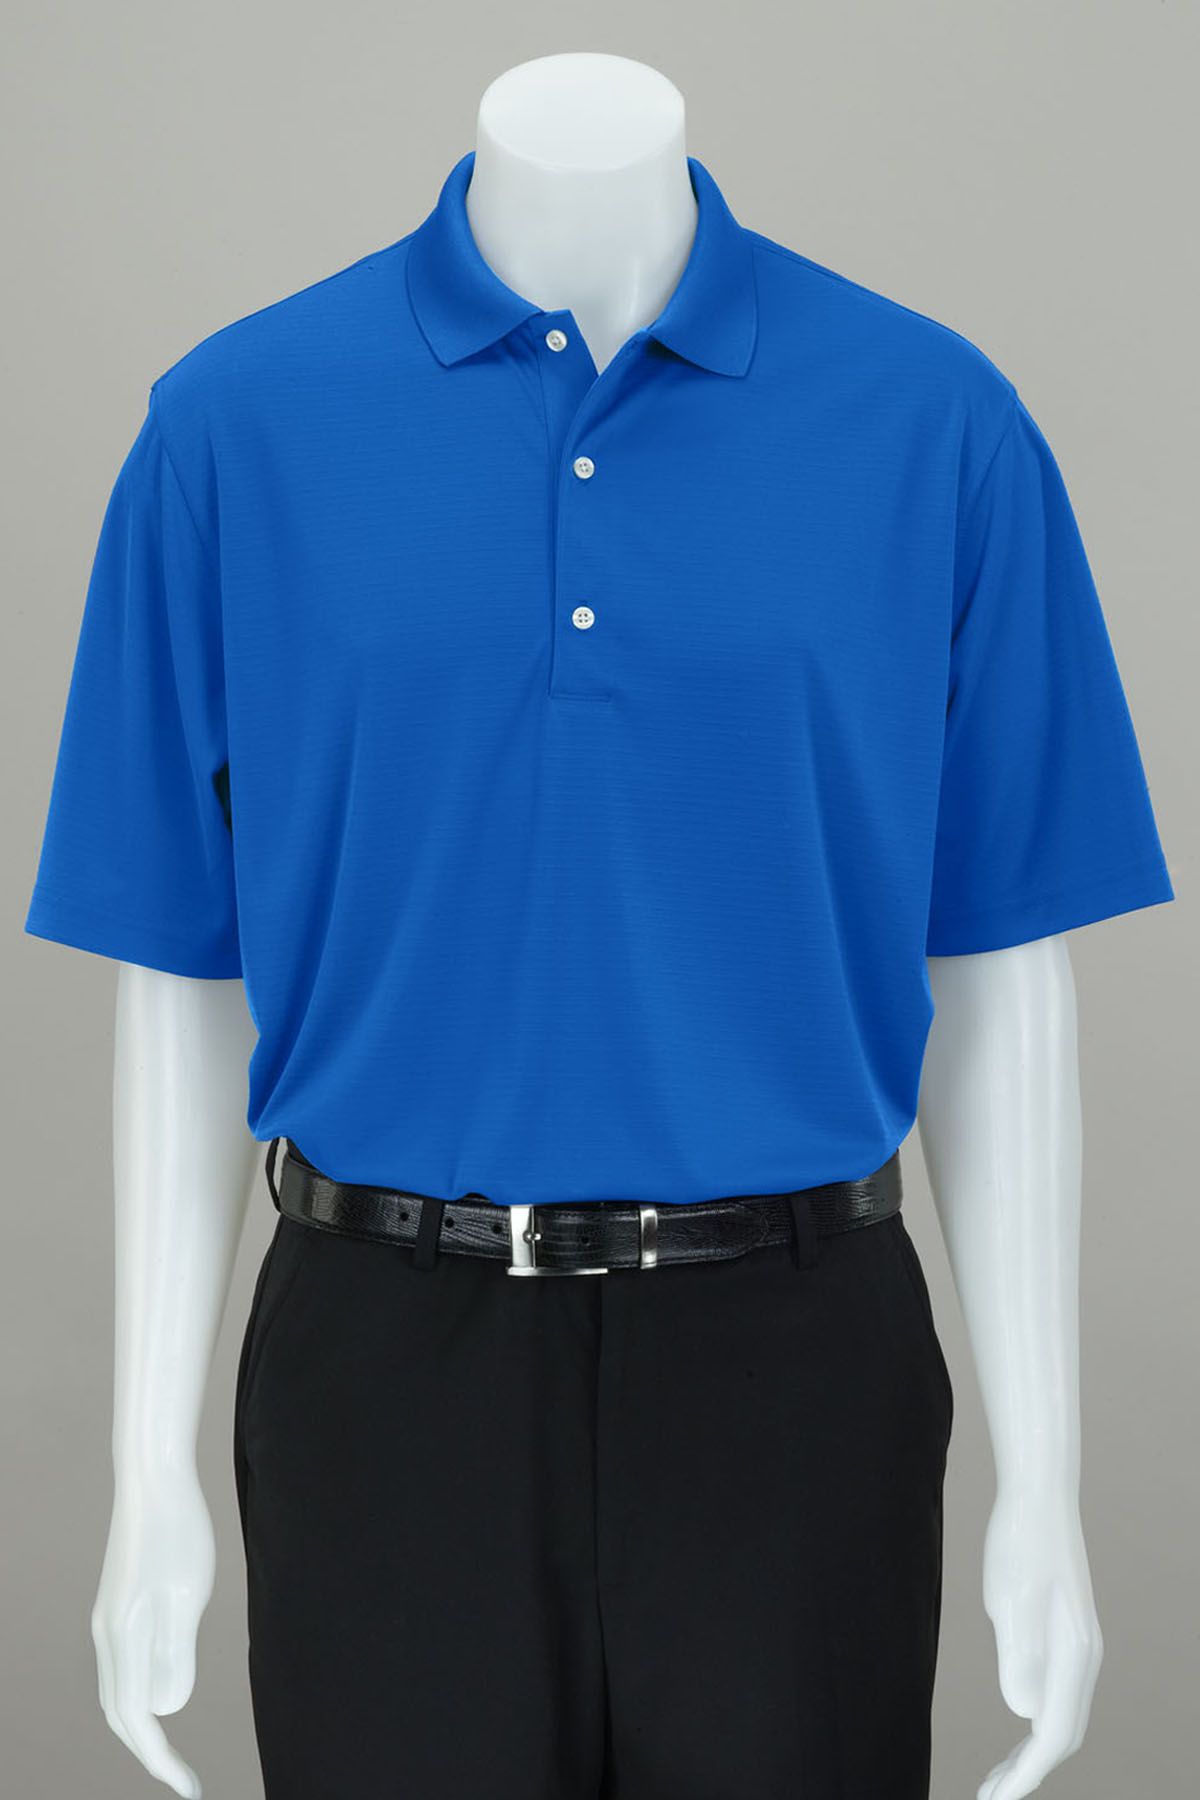 Greg norman gns2k413 play dry ml75 textured solid polo for Greg norman ml75 shirts